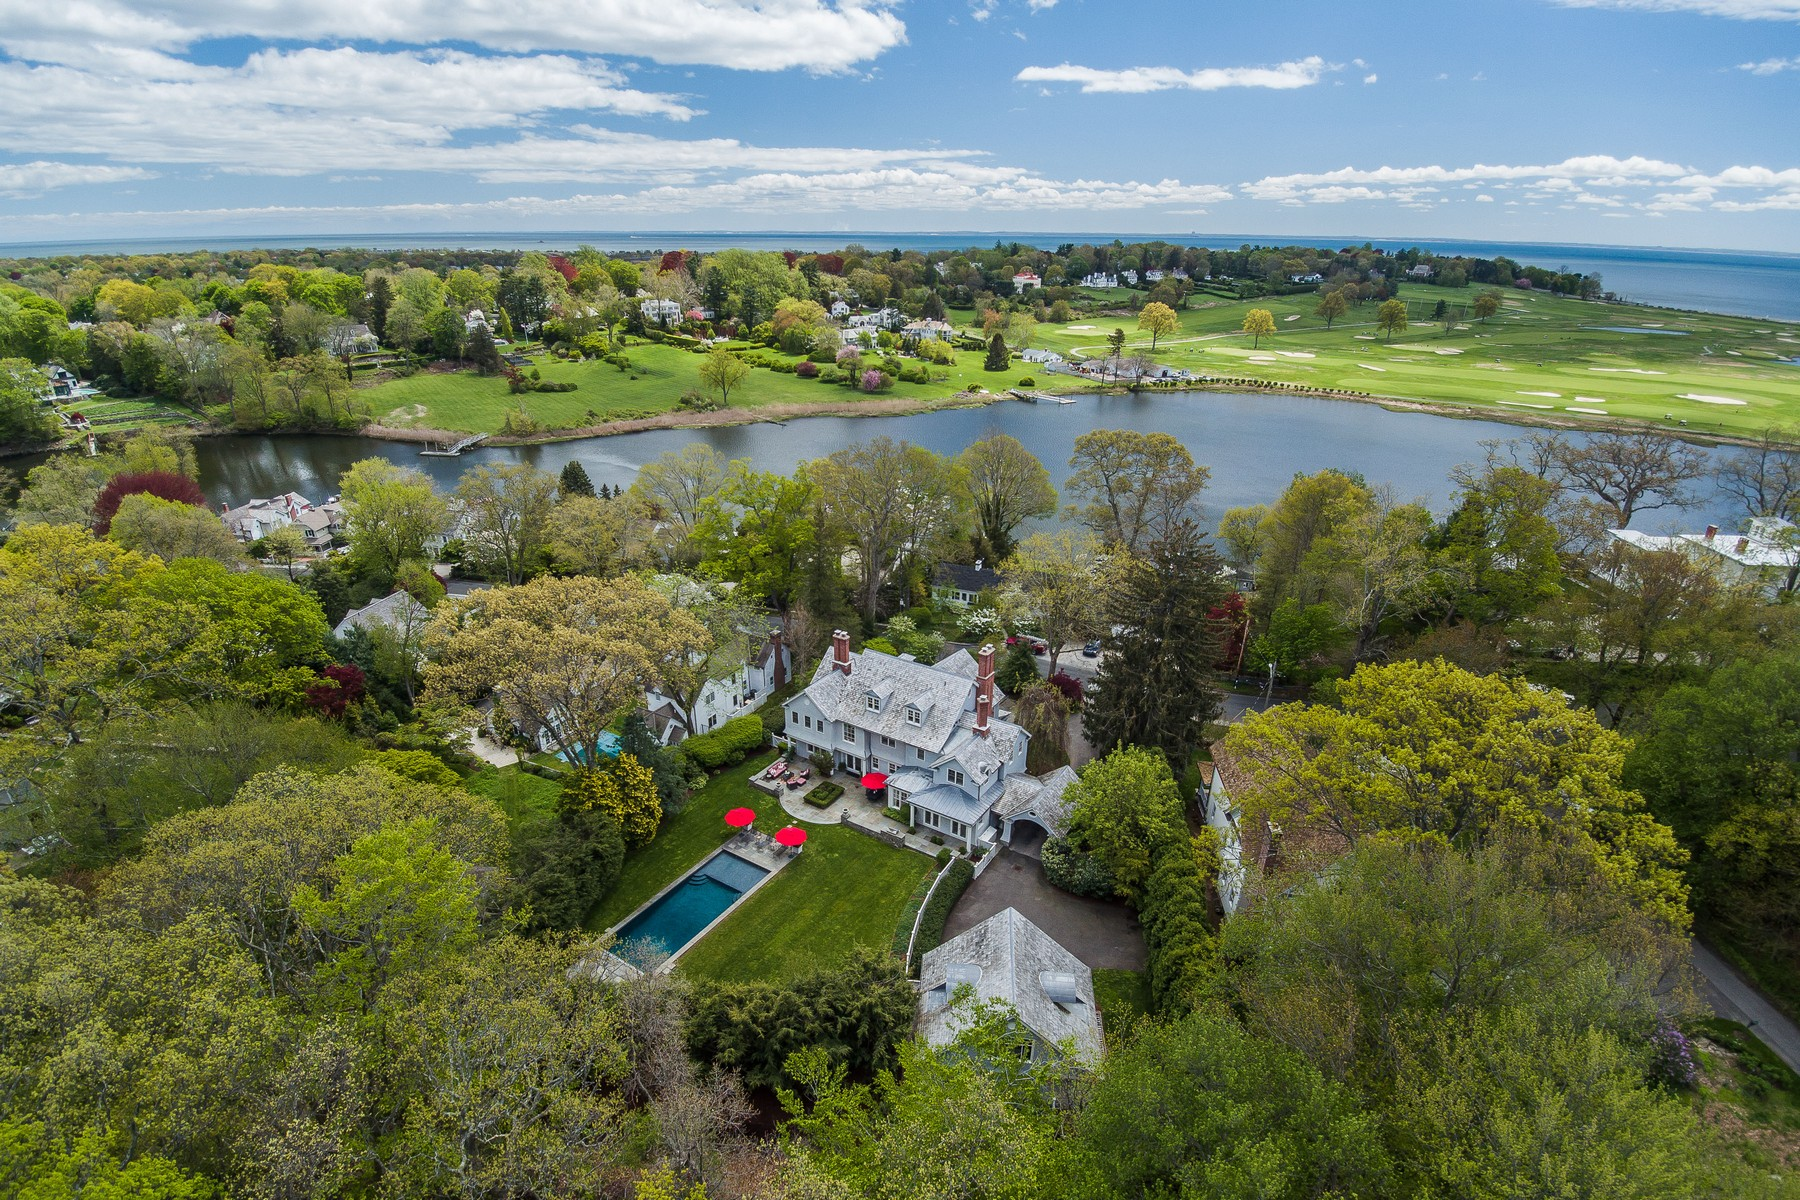 Single Family Home for Sale at SOUTHPORT SHINGLE STYLE ESTATE 322 Harbor Road Fairfield, Connecticut 06890 United States